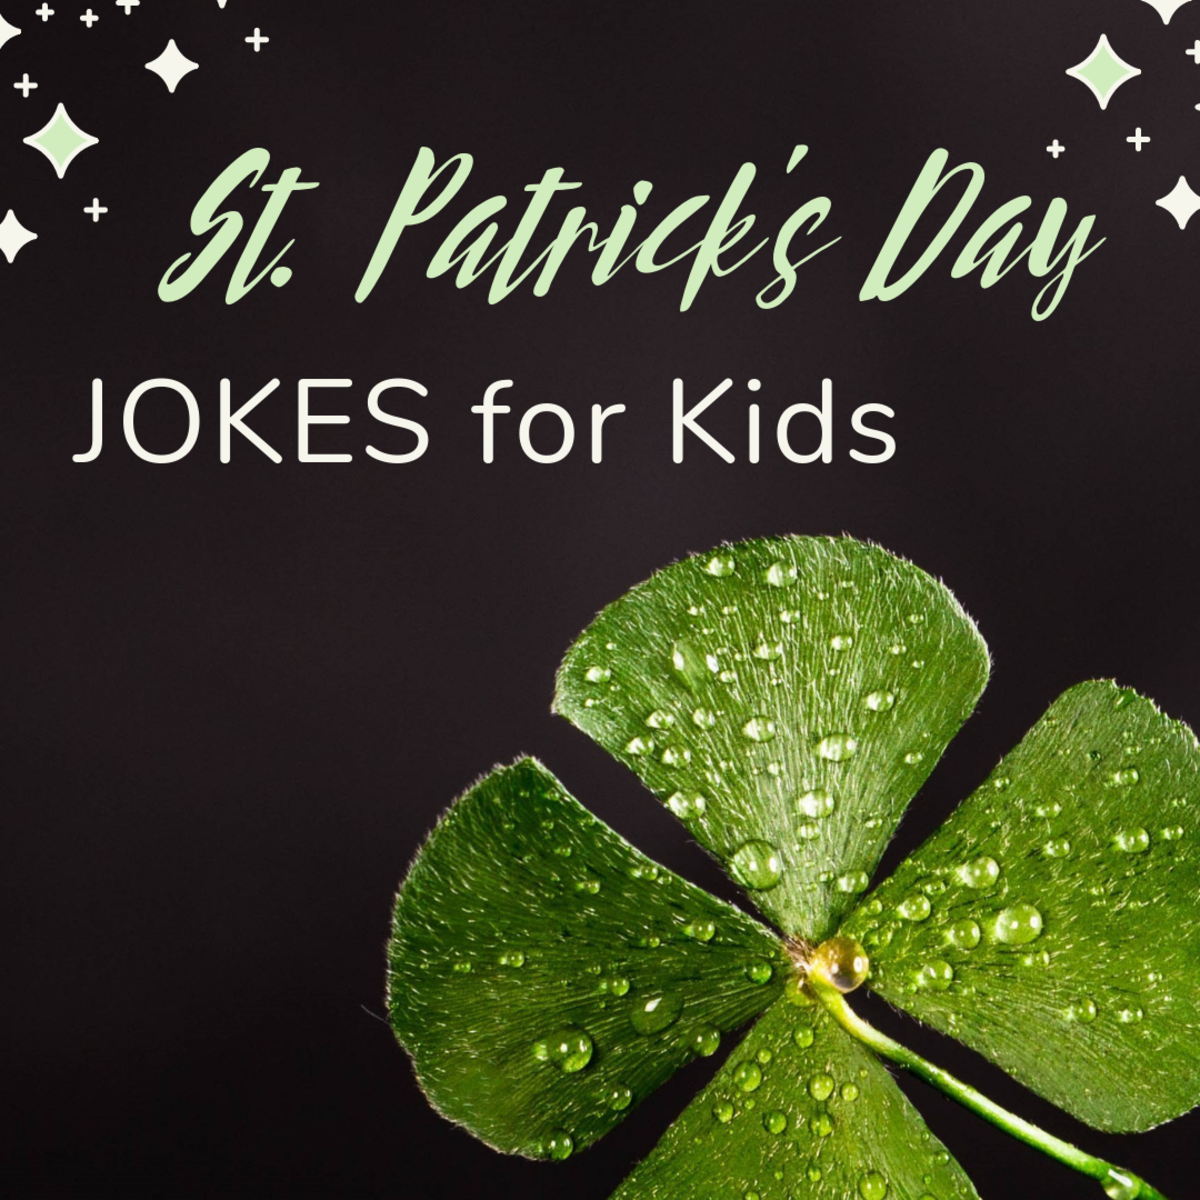 St Patrick's Day Jokes and Riddles for Kids